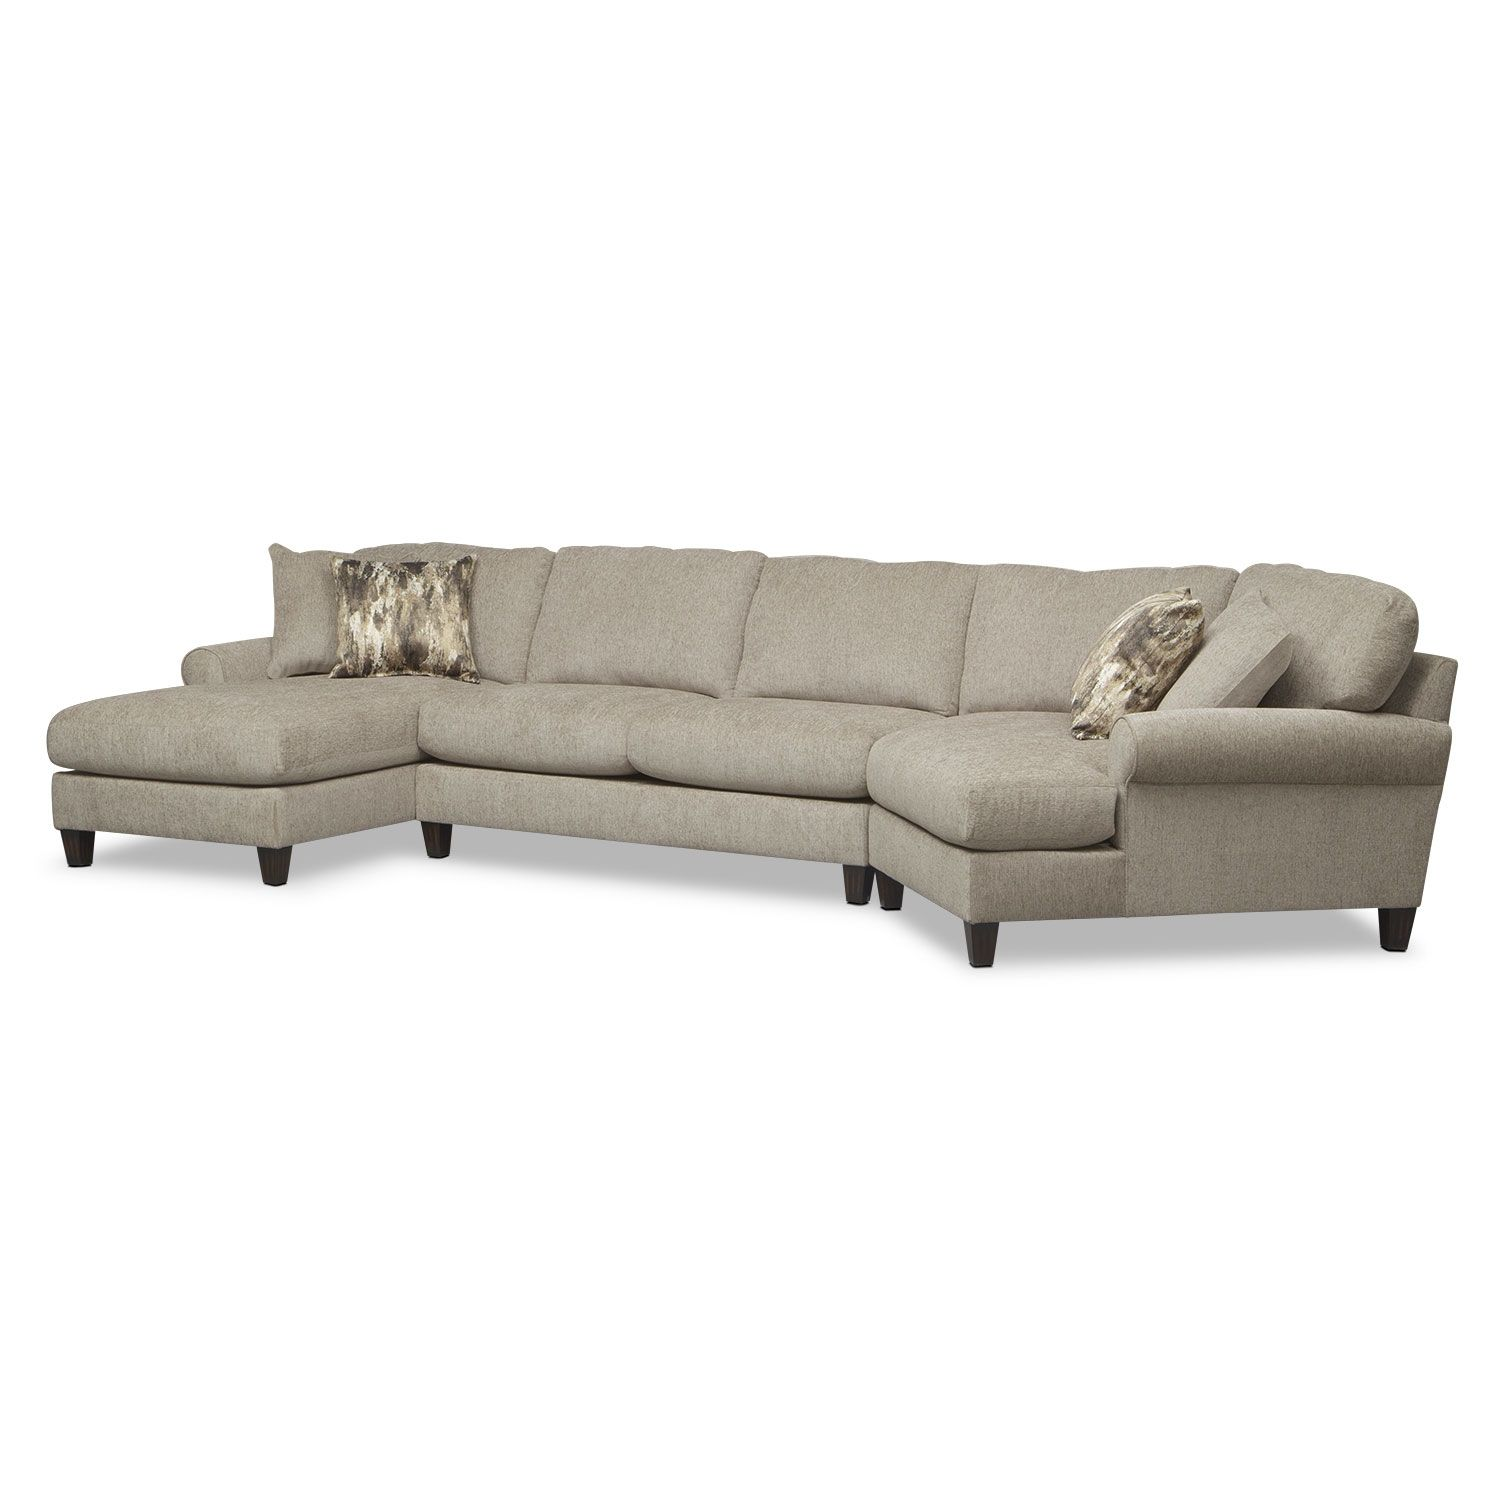 Living Room Furniture Karma Mink 3 Pc Sectional with Right